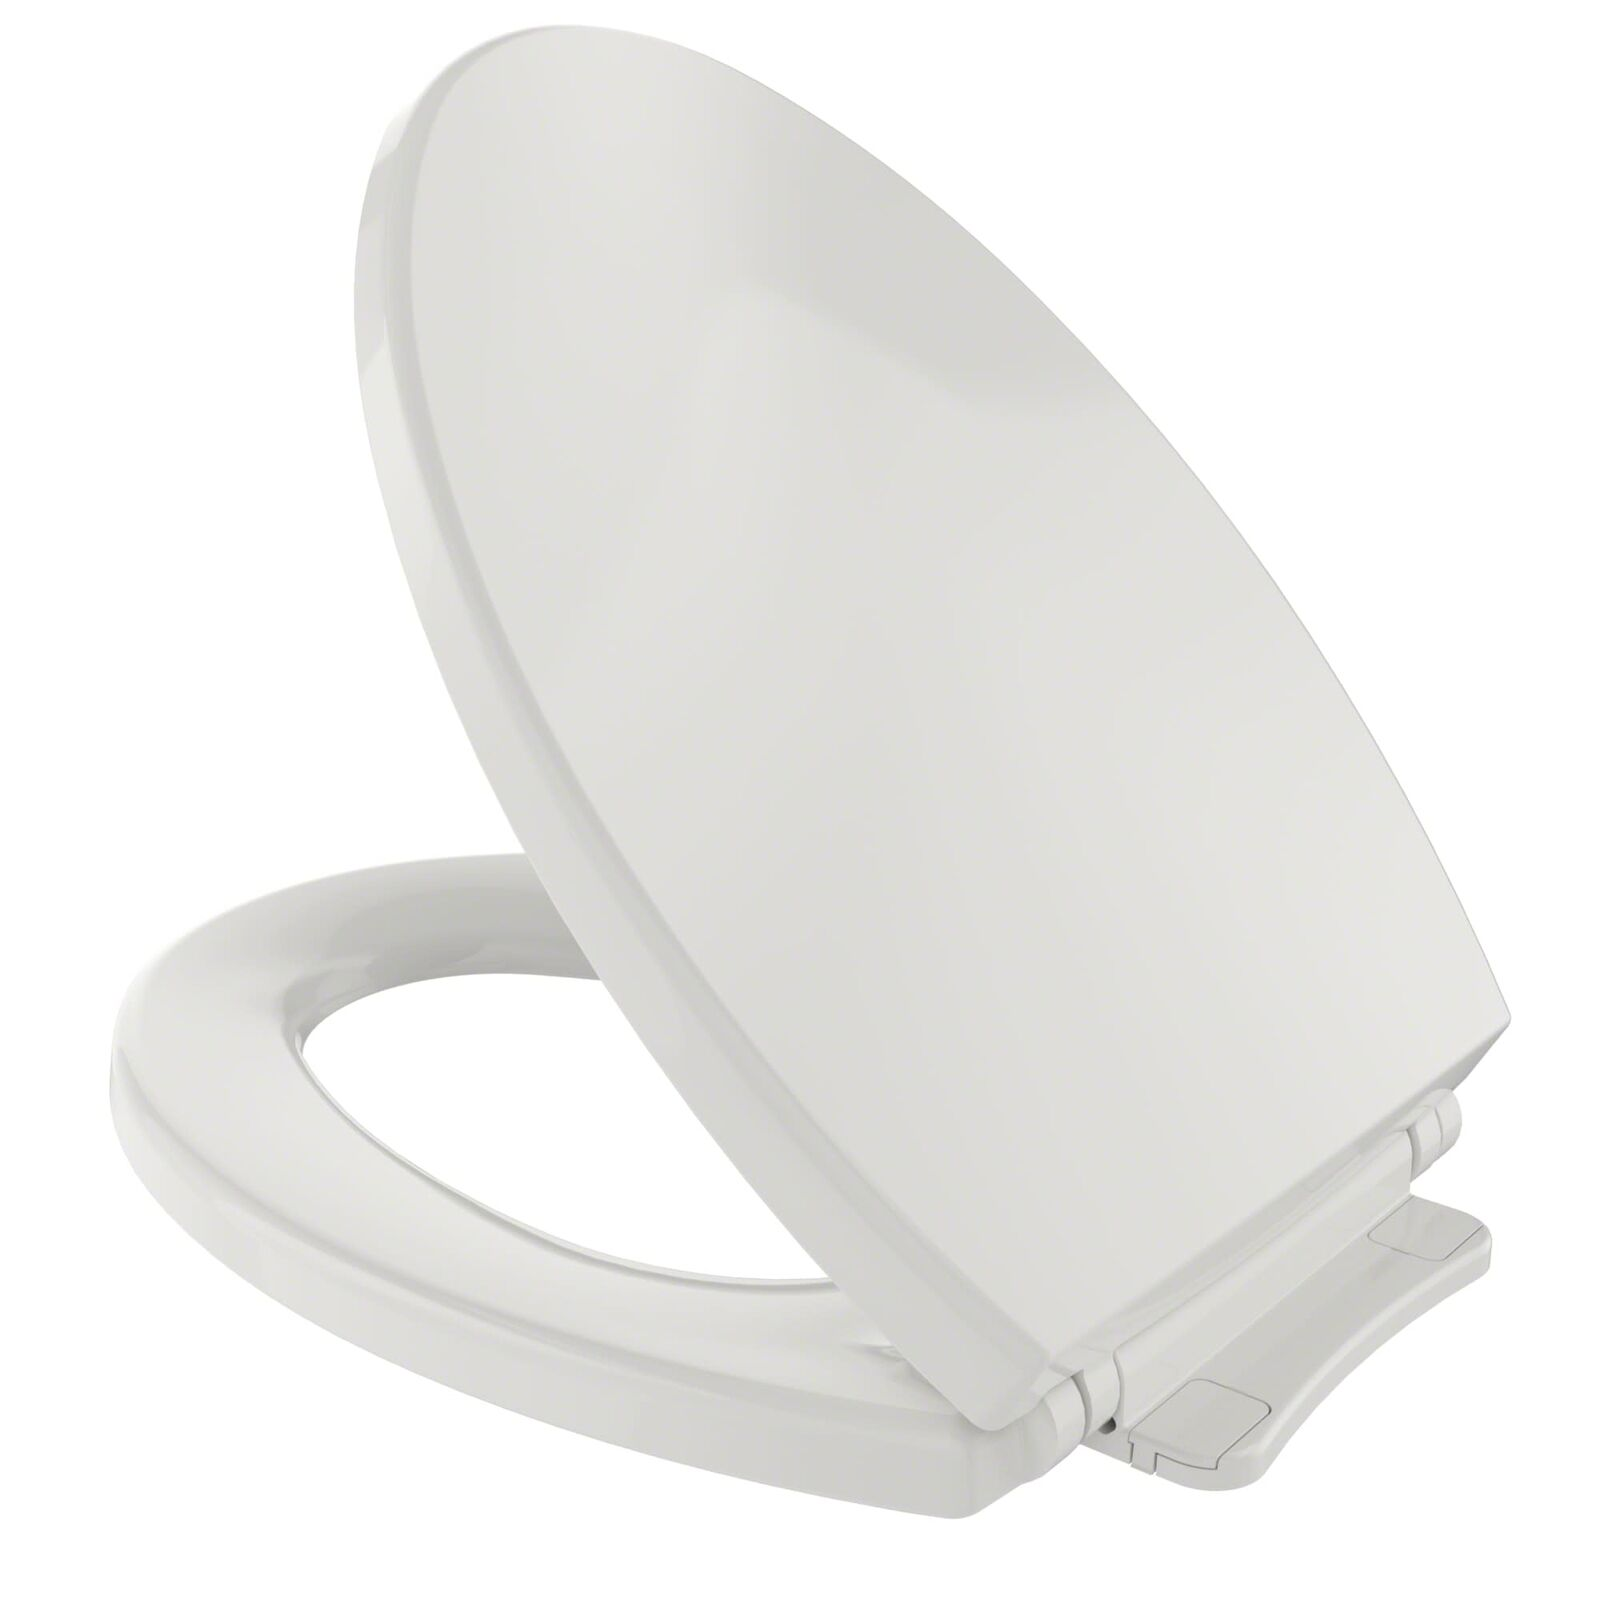 Toto Ss114 11 Transitional Softclose Elongated Toilet Seat Colonial White For Sale Online Ebay